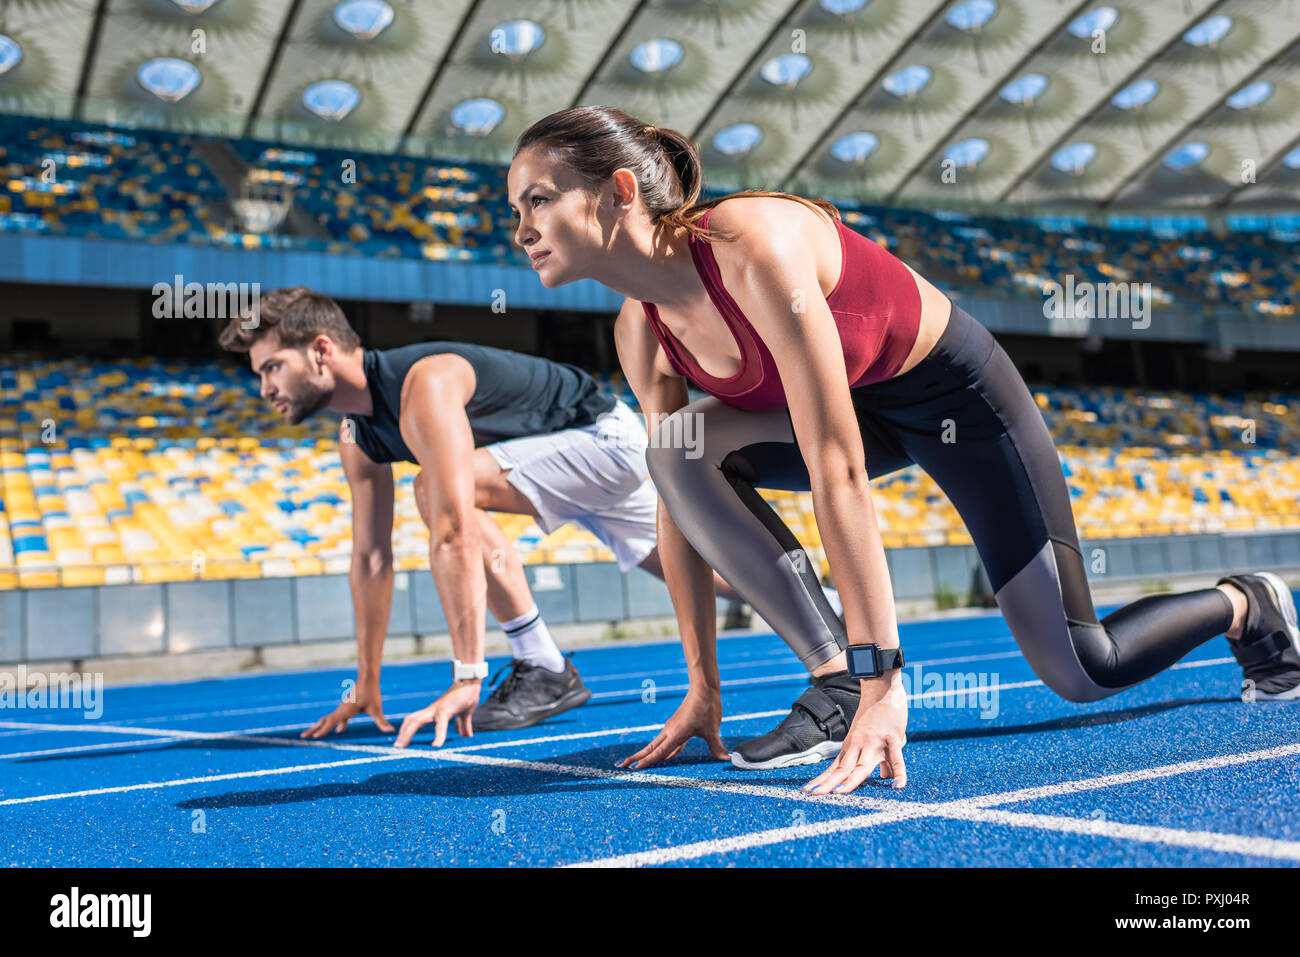 sportive young male and female sprinters in start position on running track at sports stadium - Stock Image